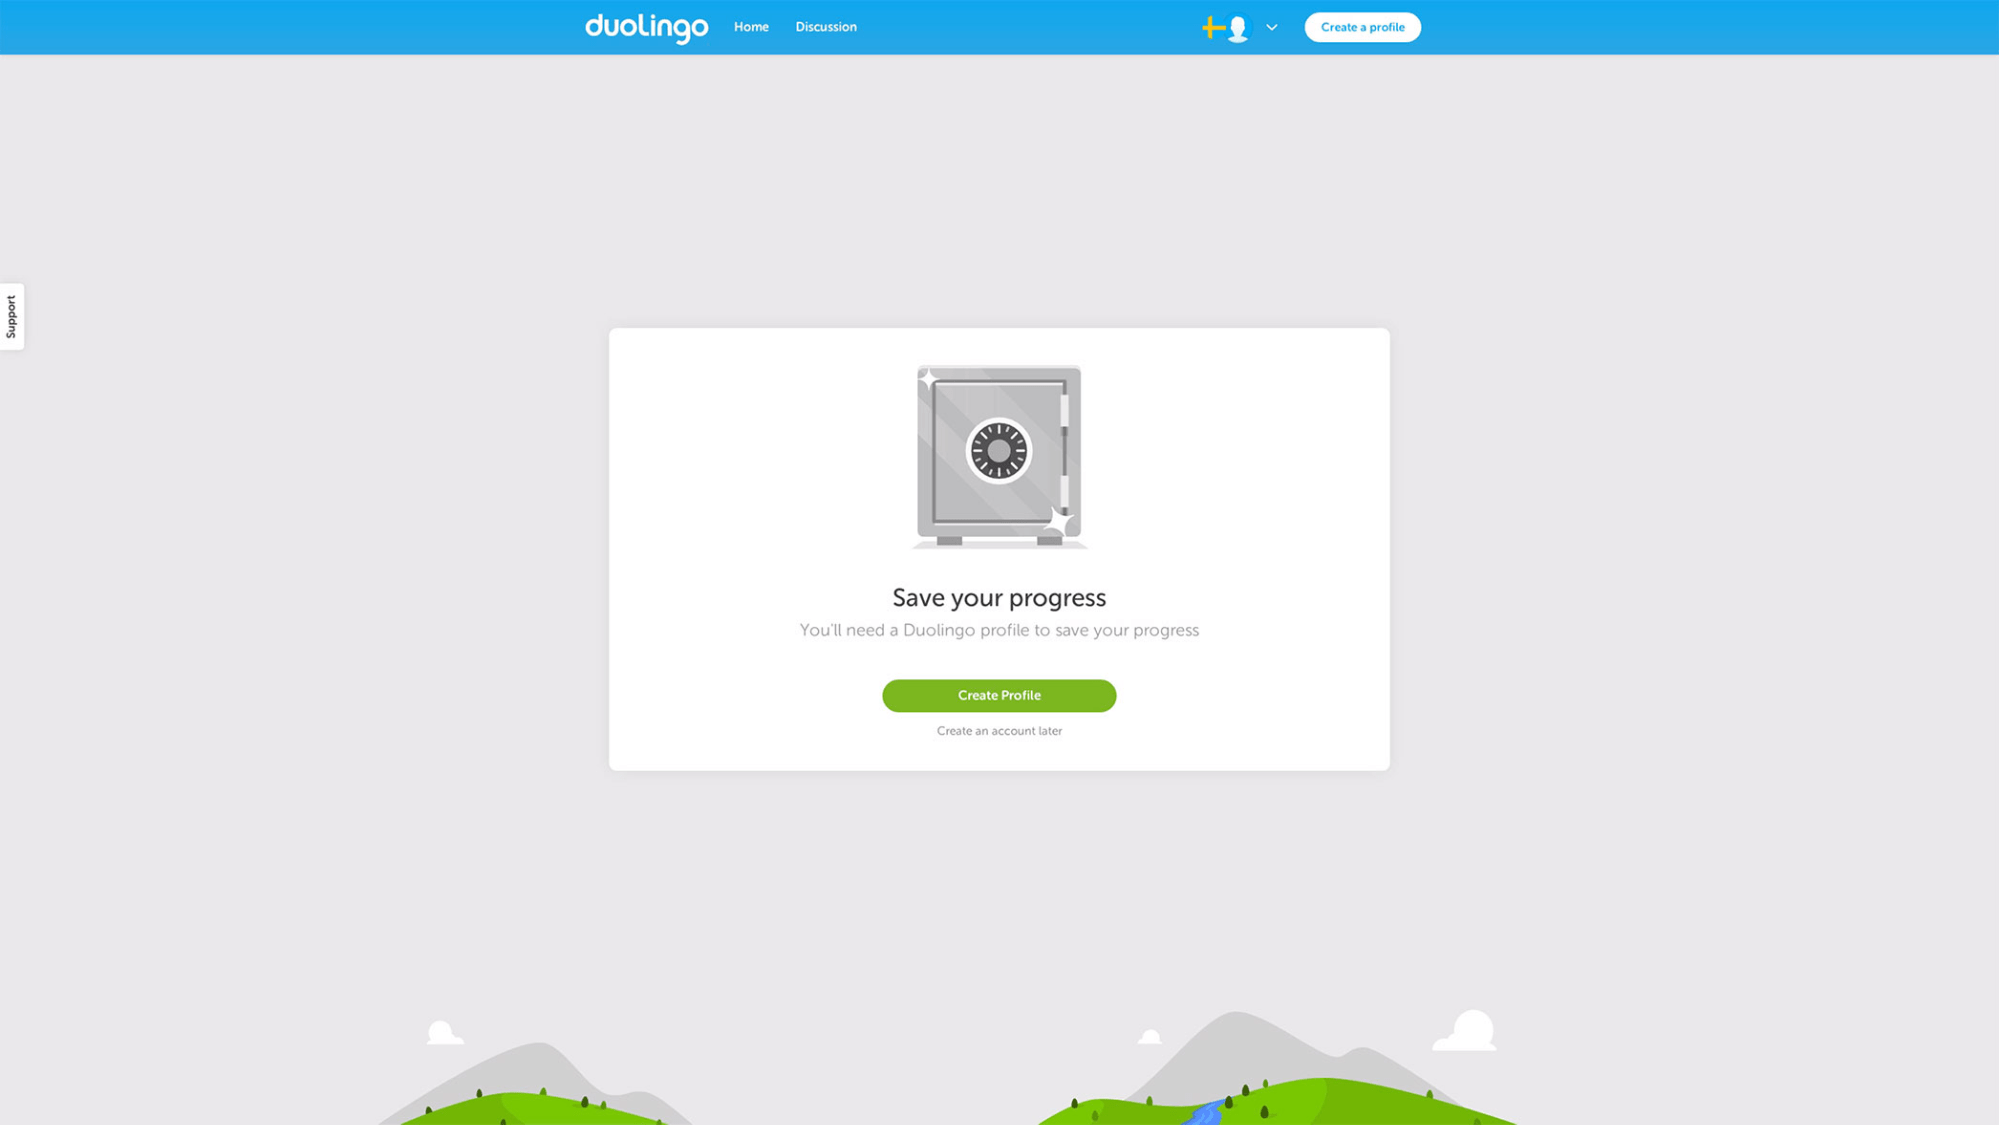 Duolingo Customer Onboarding Success